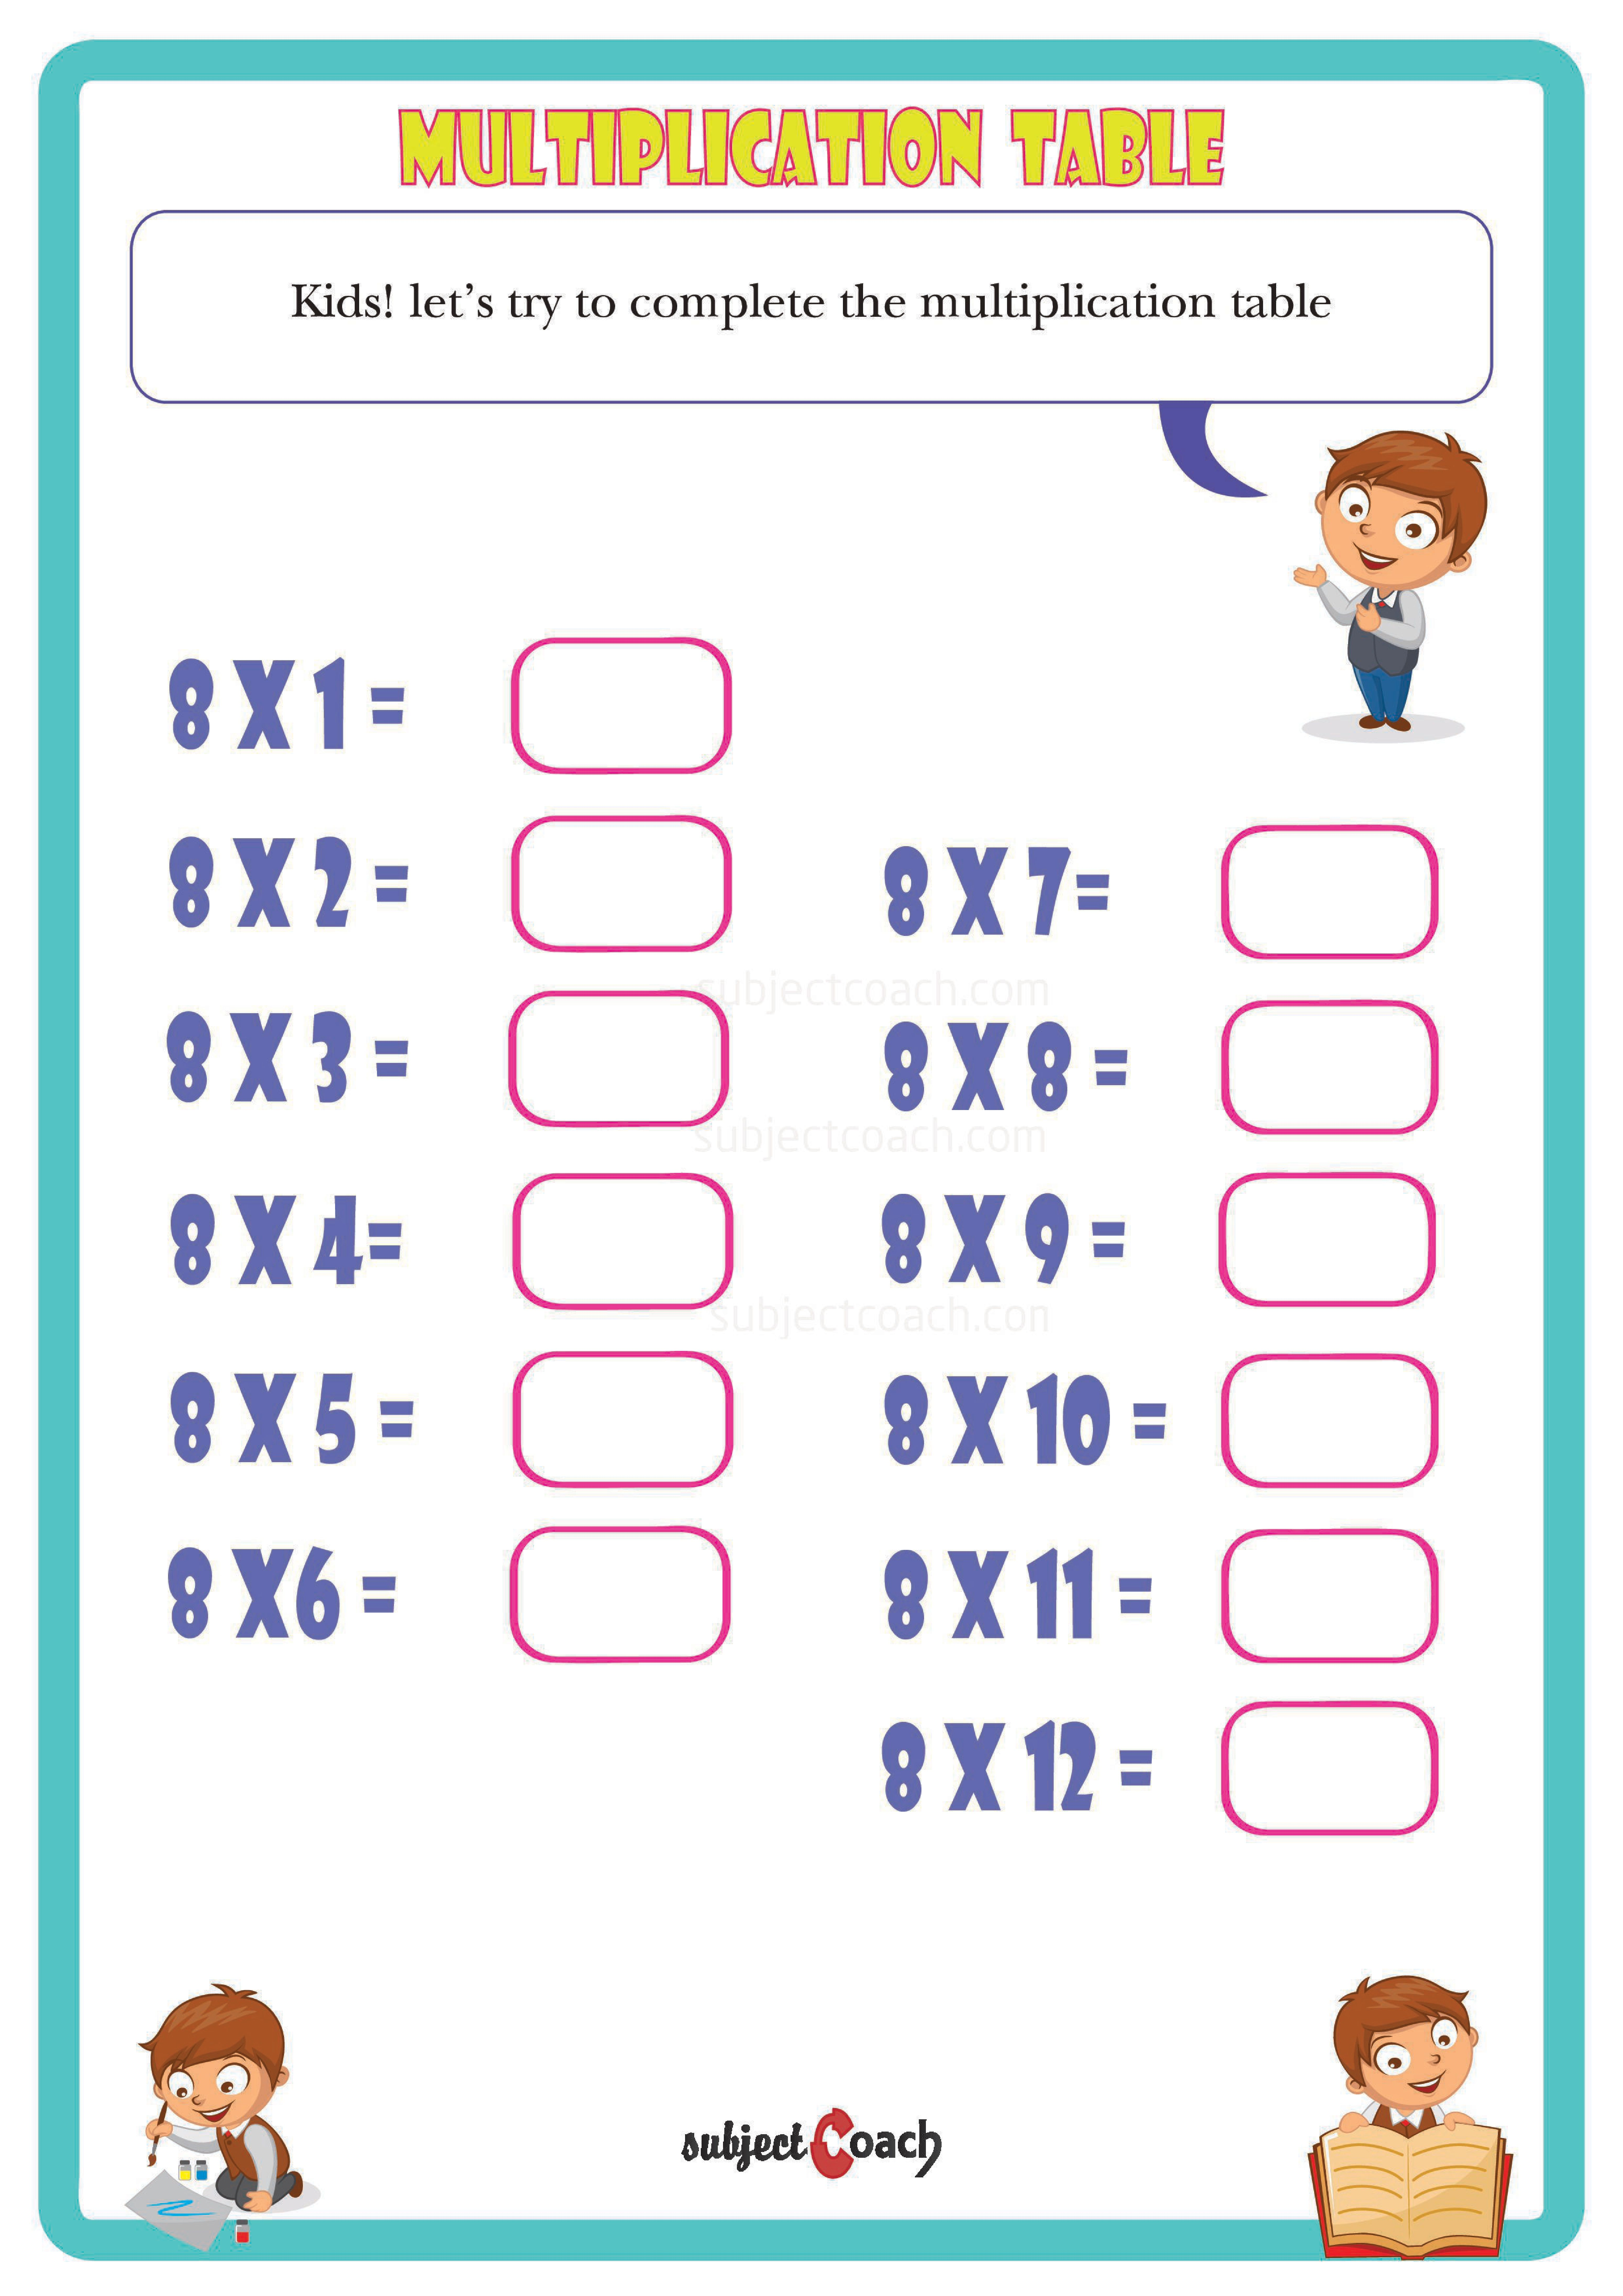 Let Your Kids Solve This Multiplication Table For Number 8 It Can Be Used As A Reference For Year 1 Math Students Thi Free Math Math Year 1 Maths Worksheets [ 8770 x 6200 Pixel ]